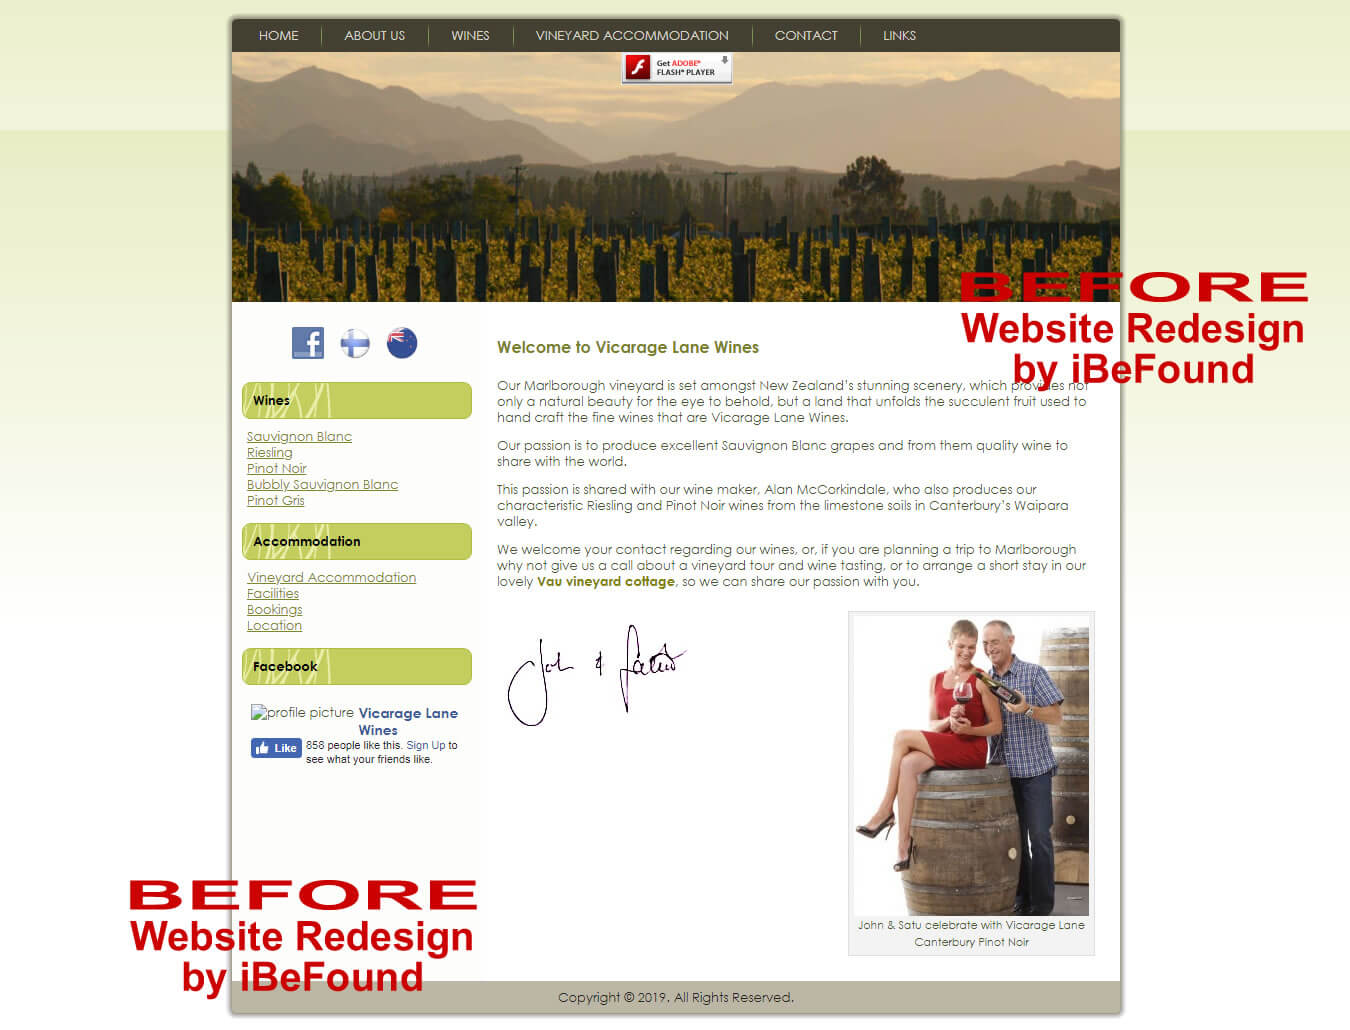 Homepage Of Vicarage Lane Wines Before Website Redesign By IBeFound Digital Marketing